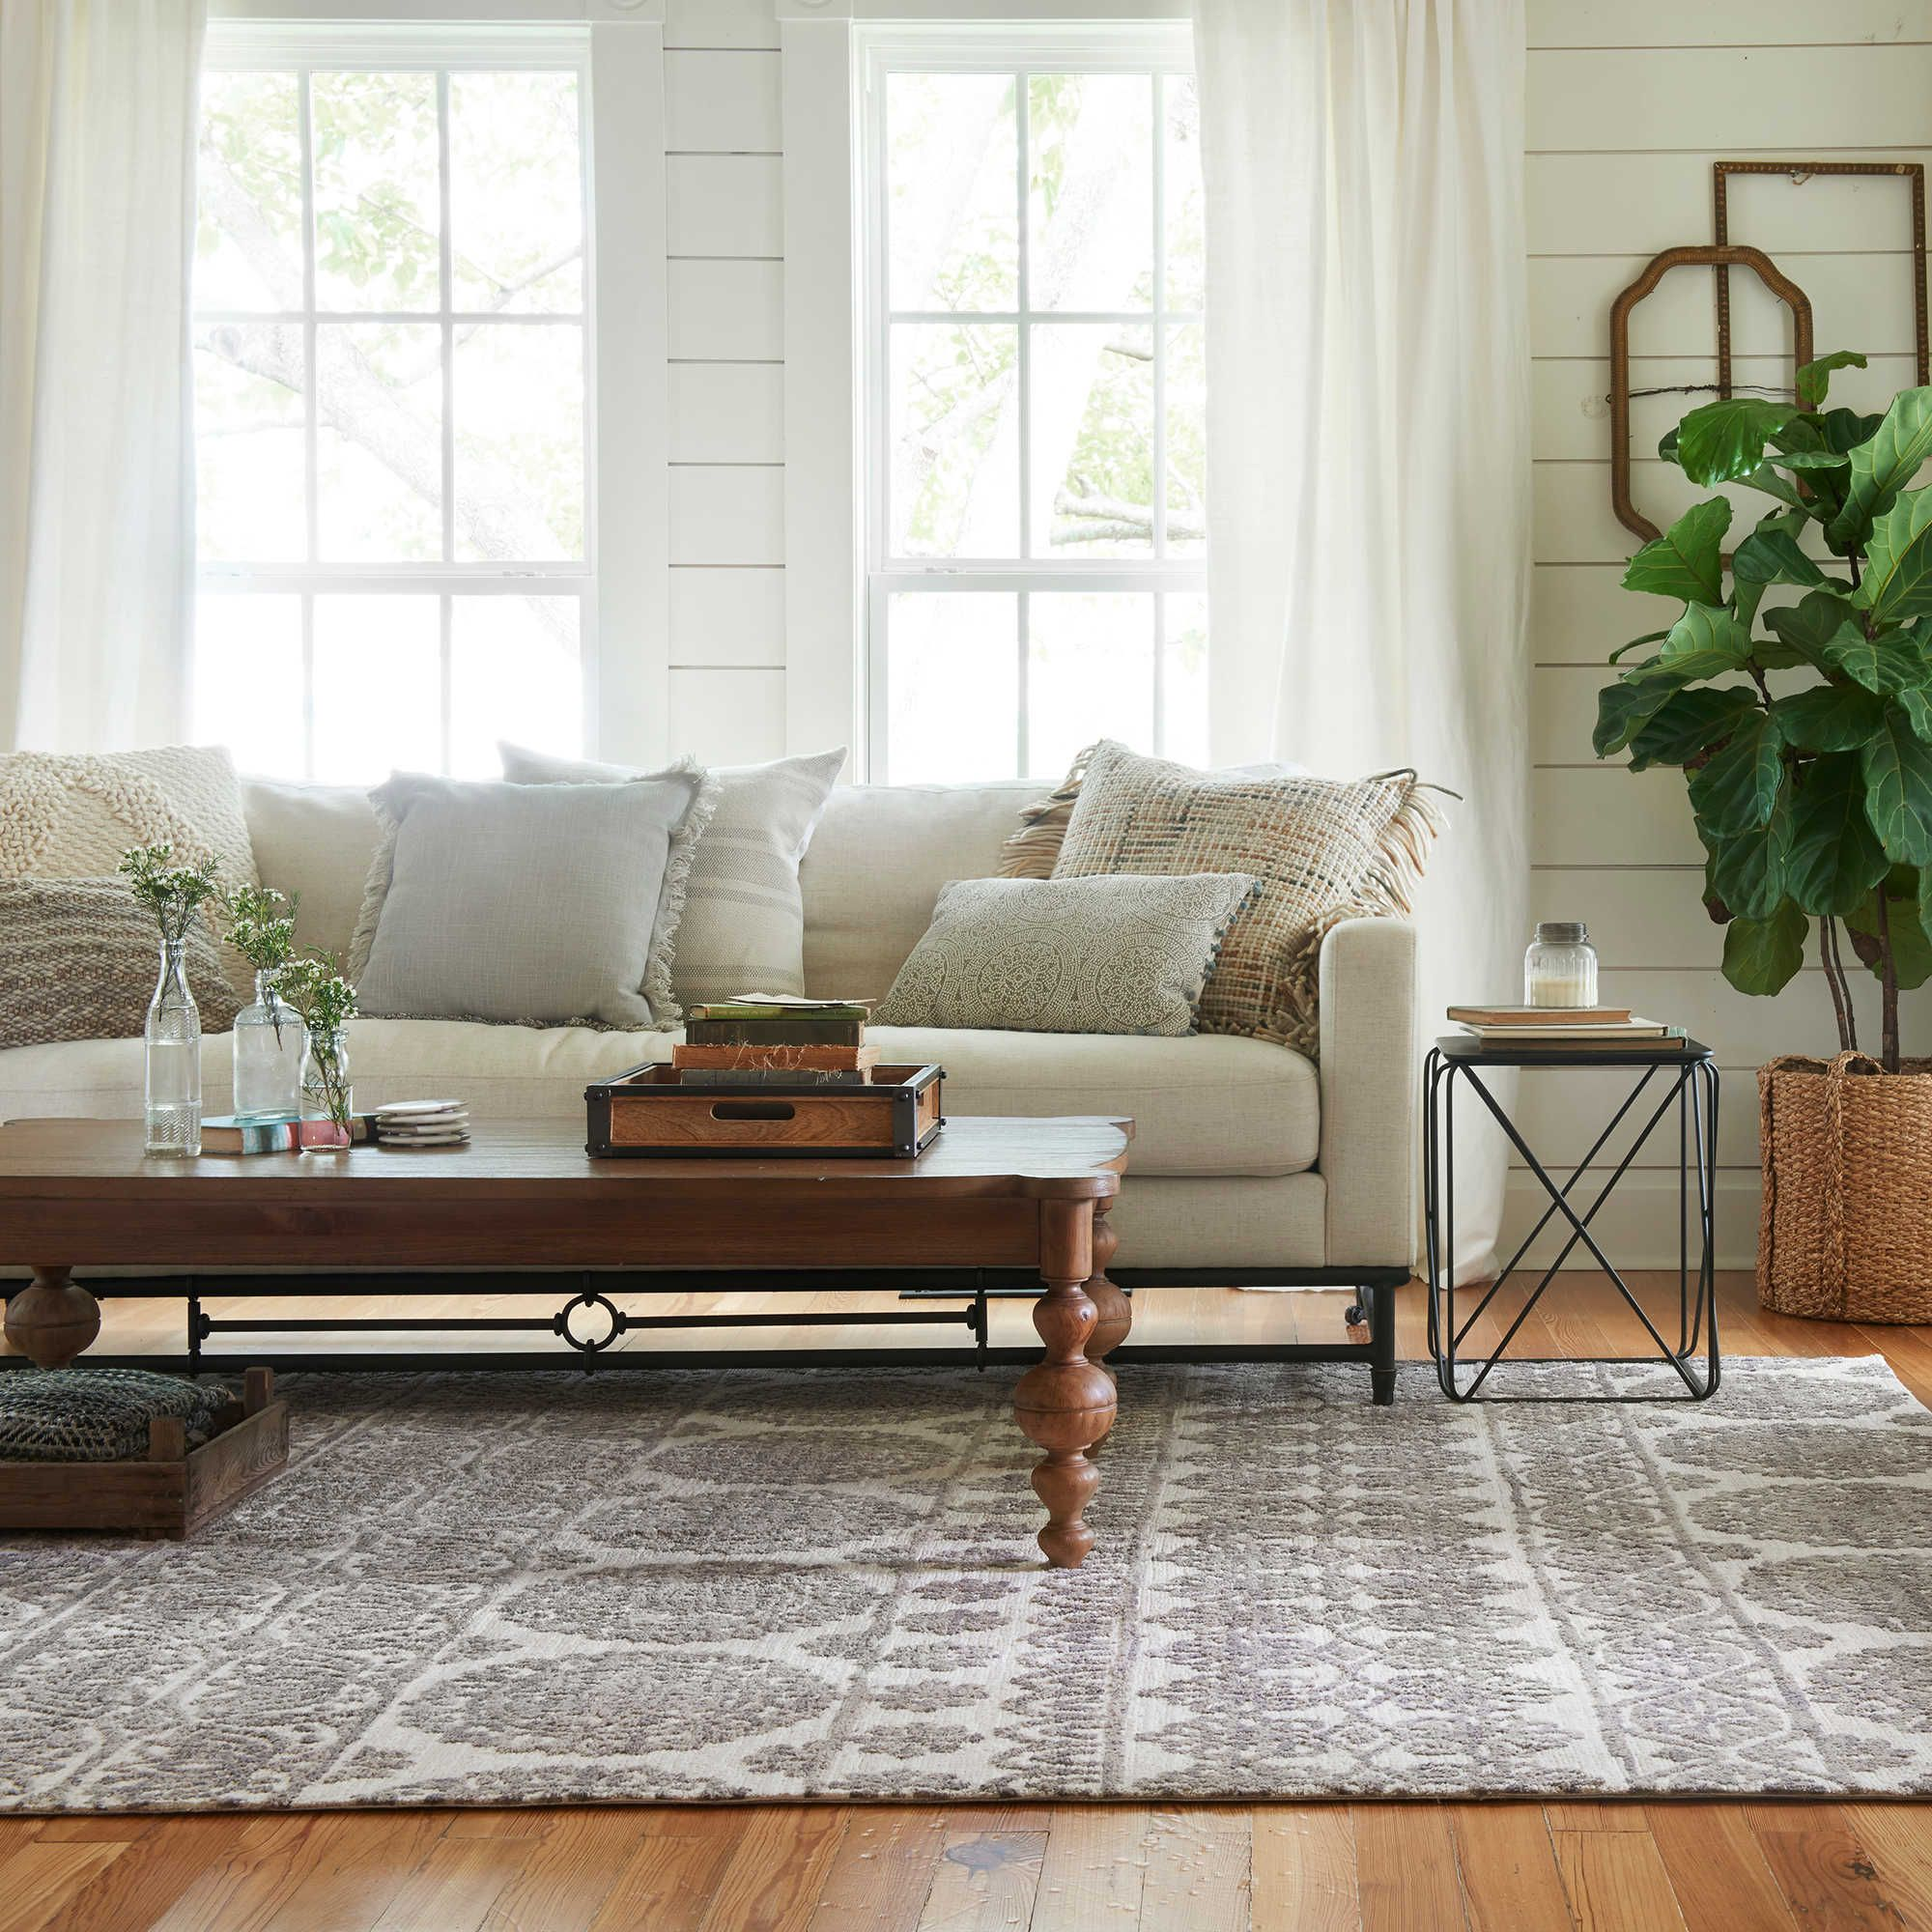 Magnolia Home By Joanna Gaines Lotus 2 3 X 3 9 Accent Rug In Ivory